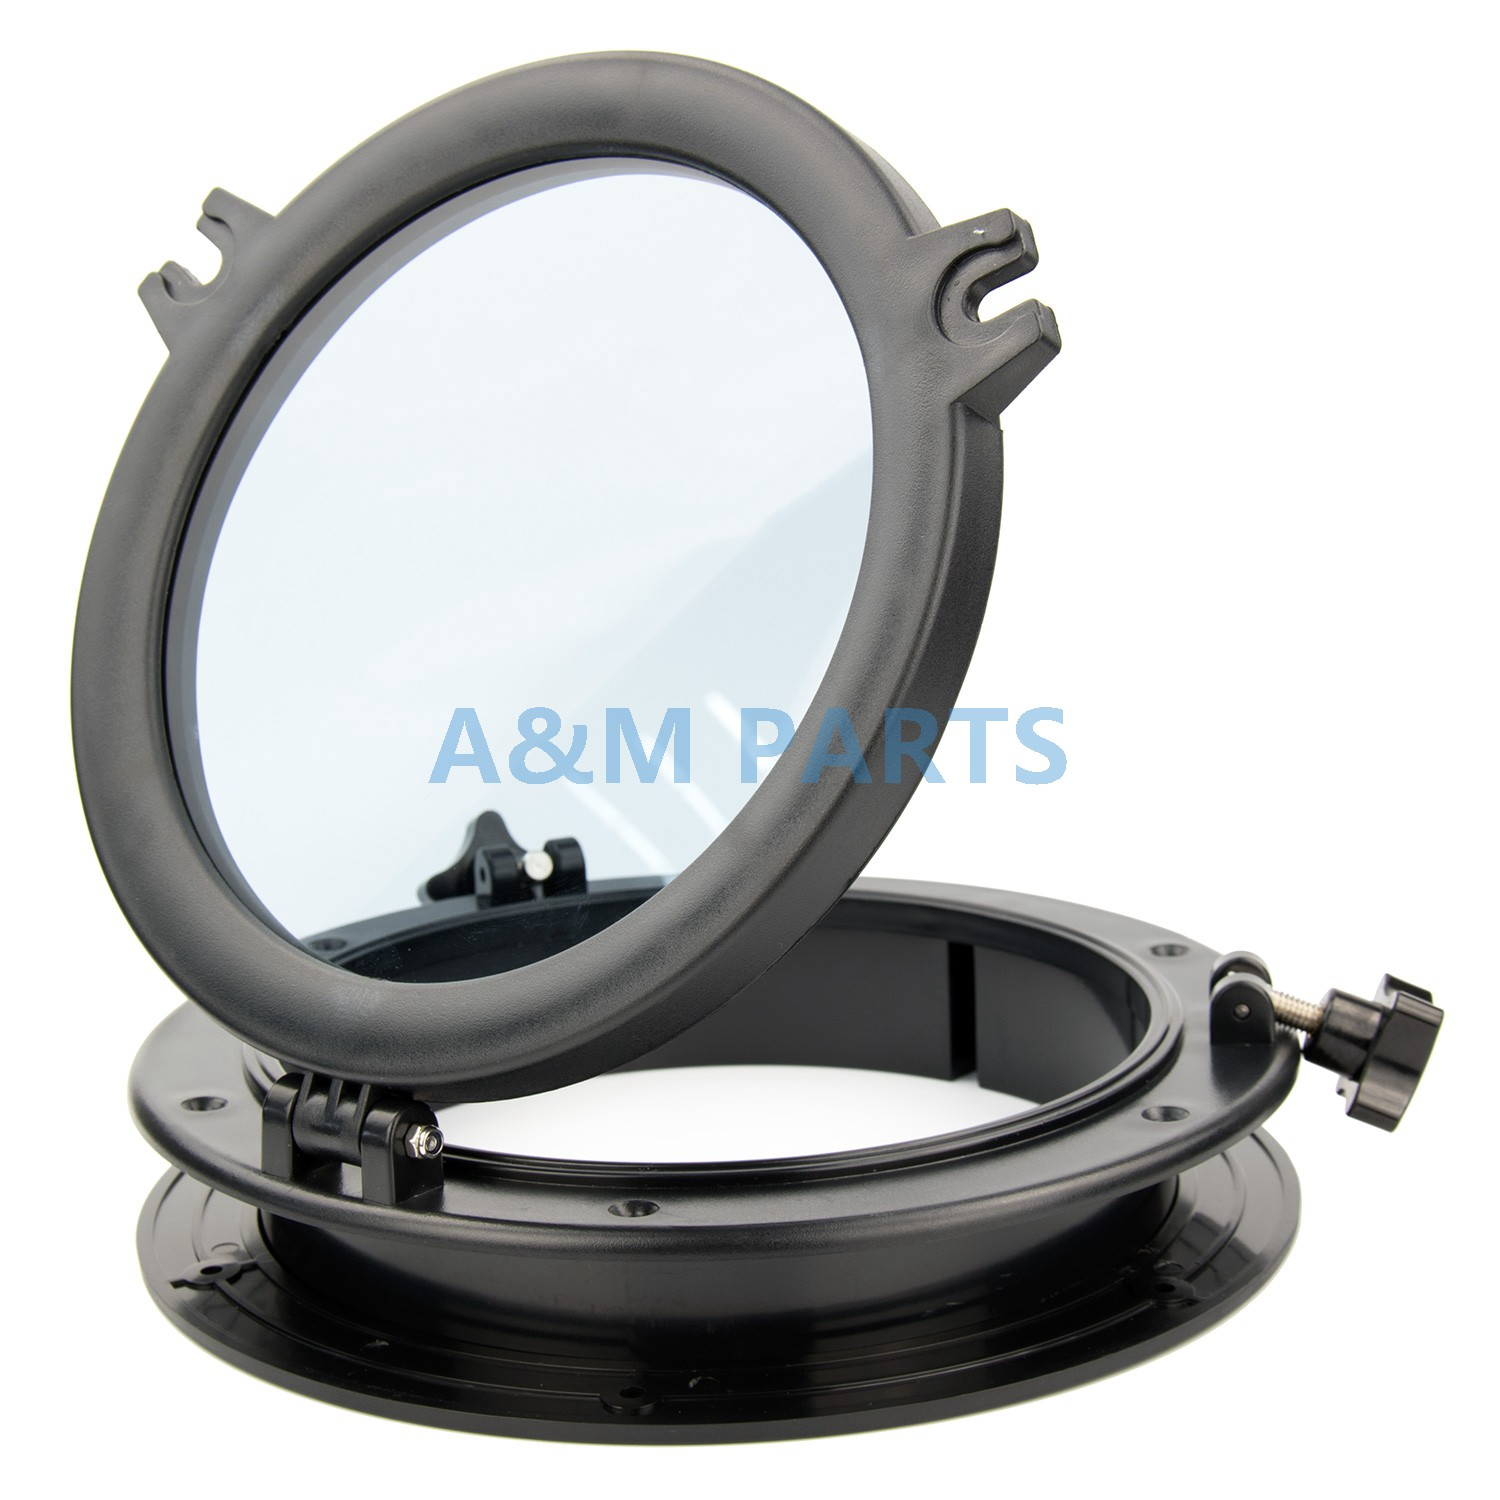 10'' Marine <font><b>Boat</b></font> RV Porthole Plastic Round Hatches Port Lights <font><b>Windows</b></font> Black image